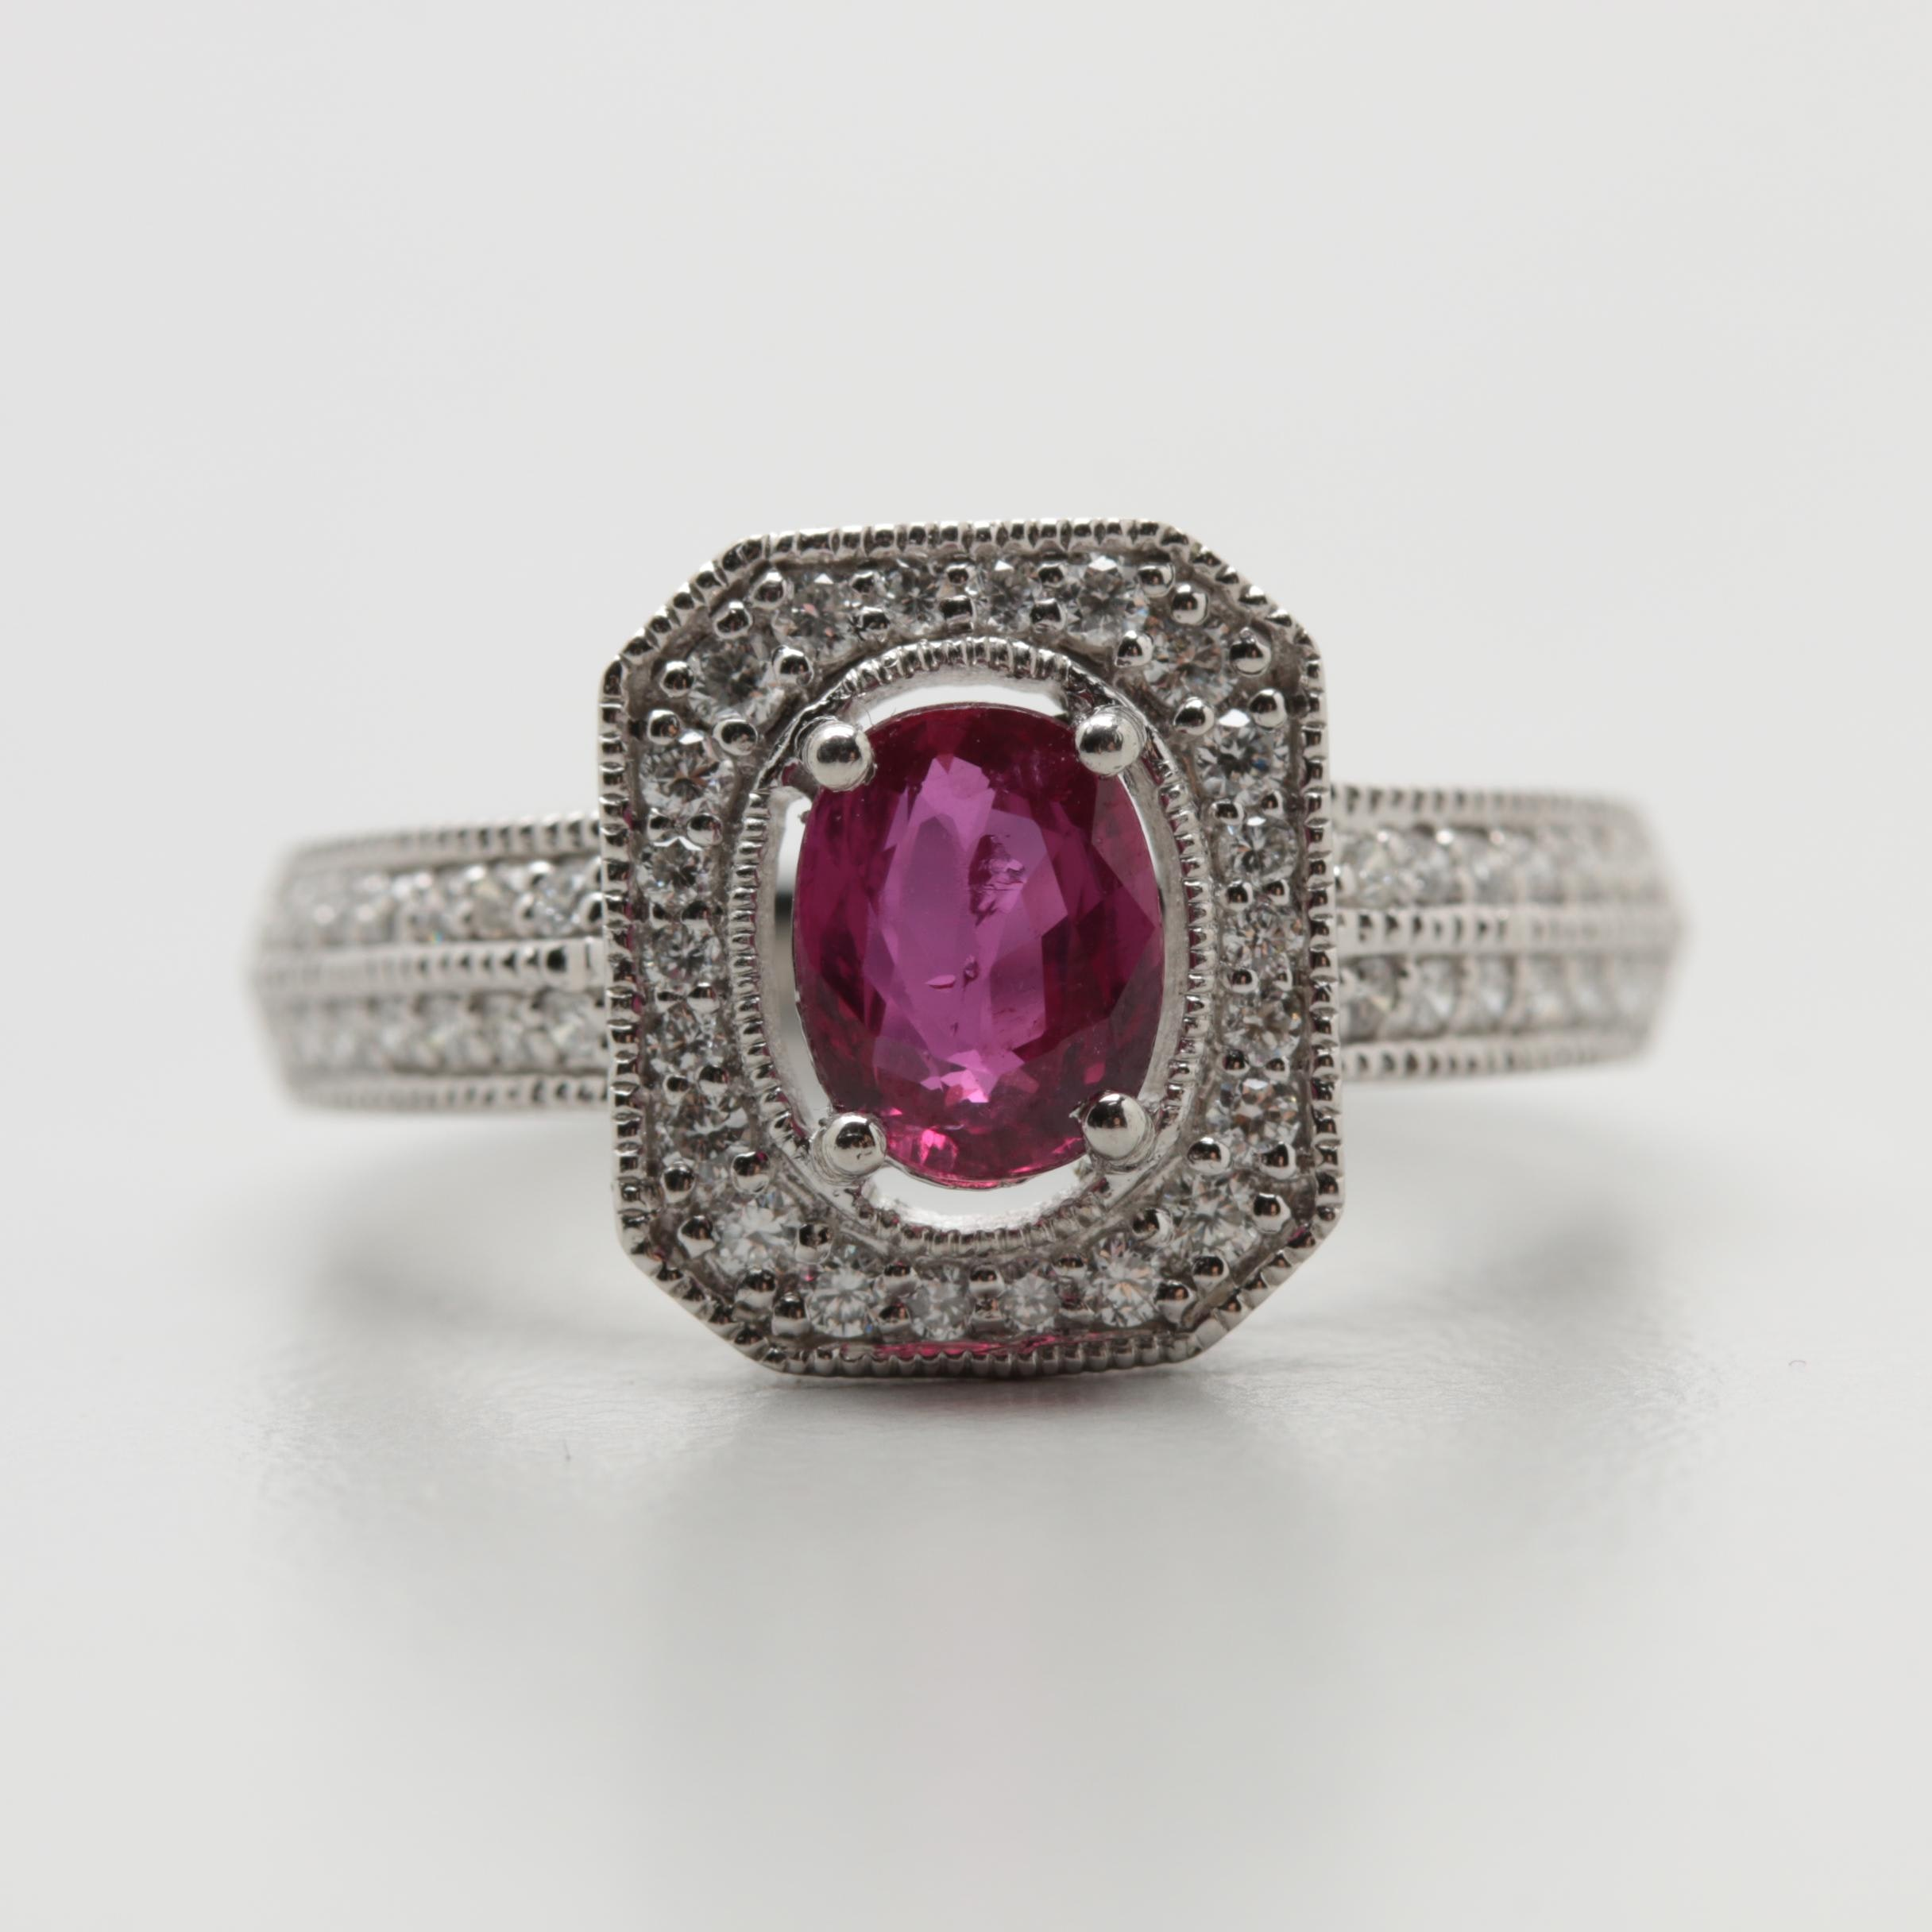 Platinum 1.02 CT Unheated Ruby and Diamond Ring with GIA Report